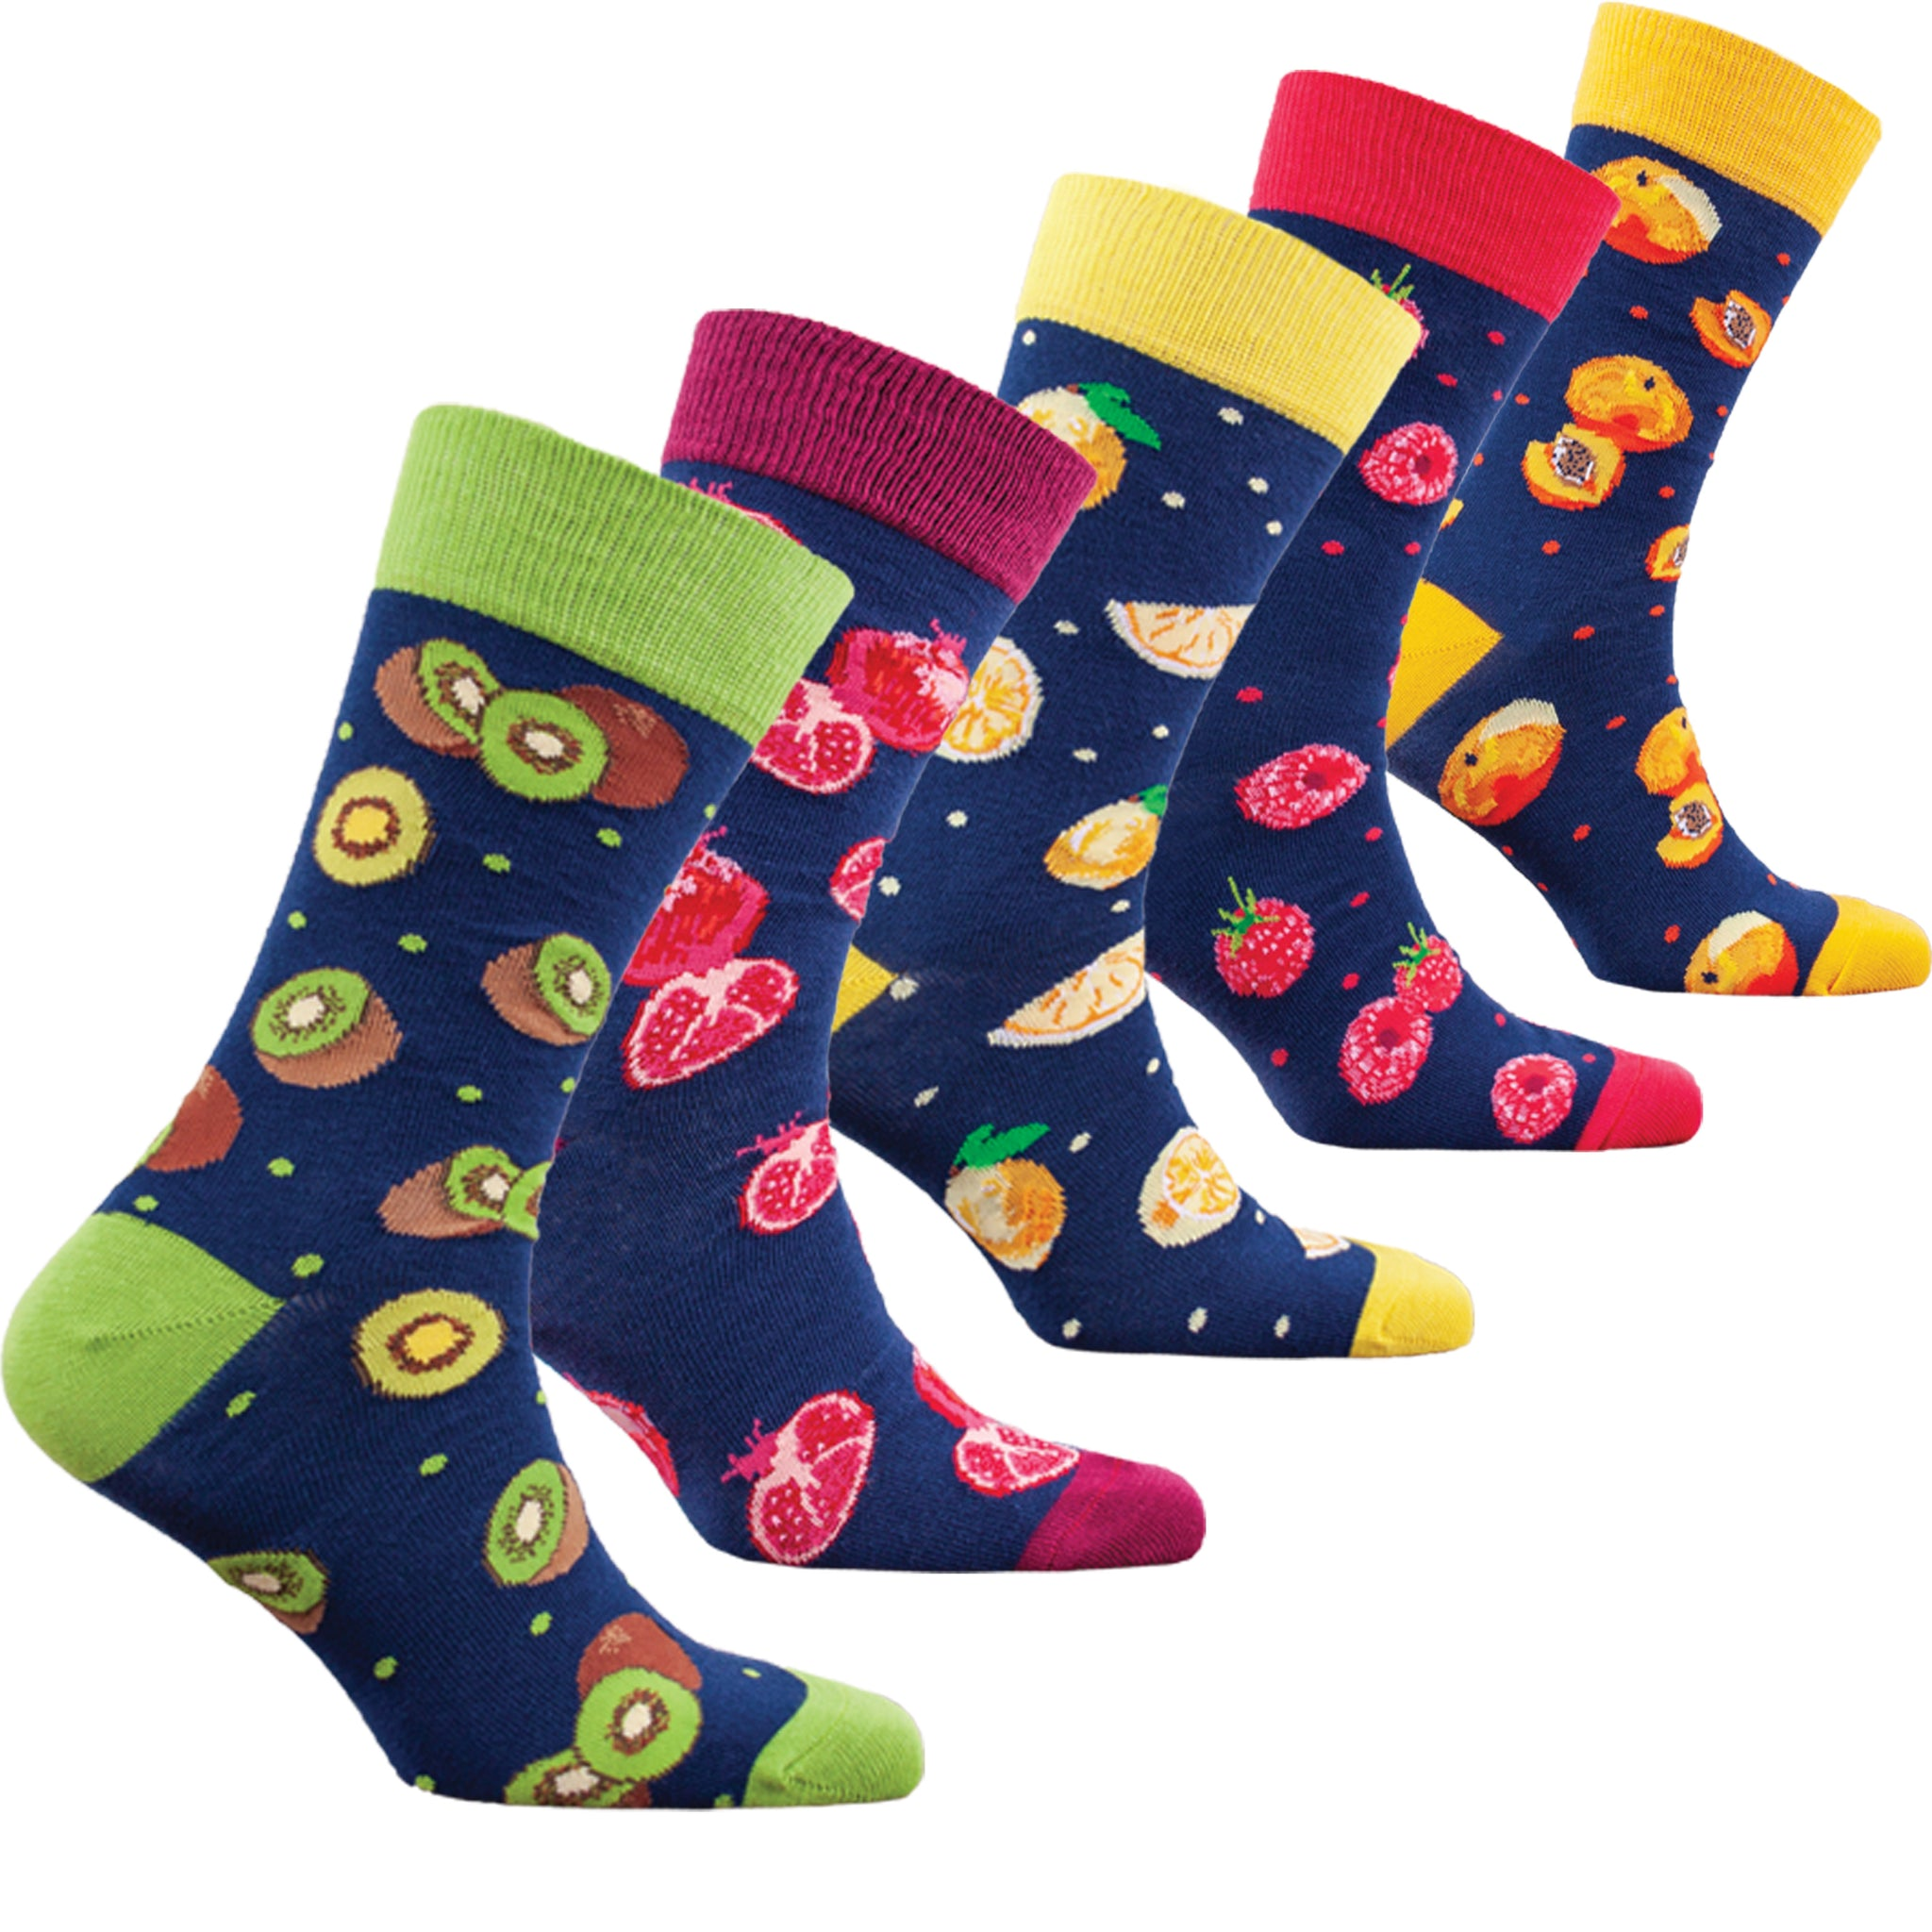 Men's Delightful Fruits Socks